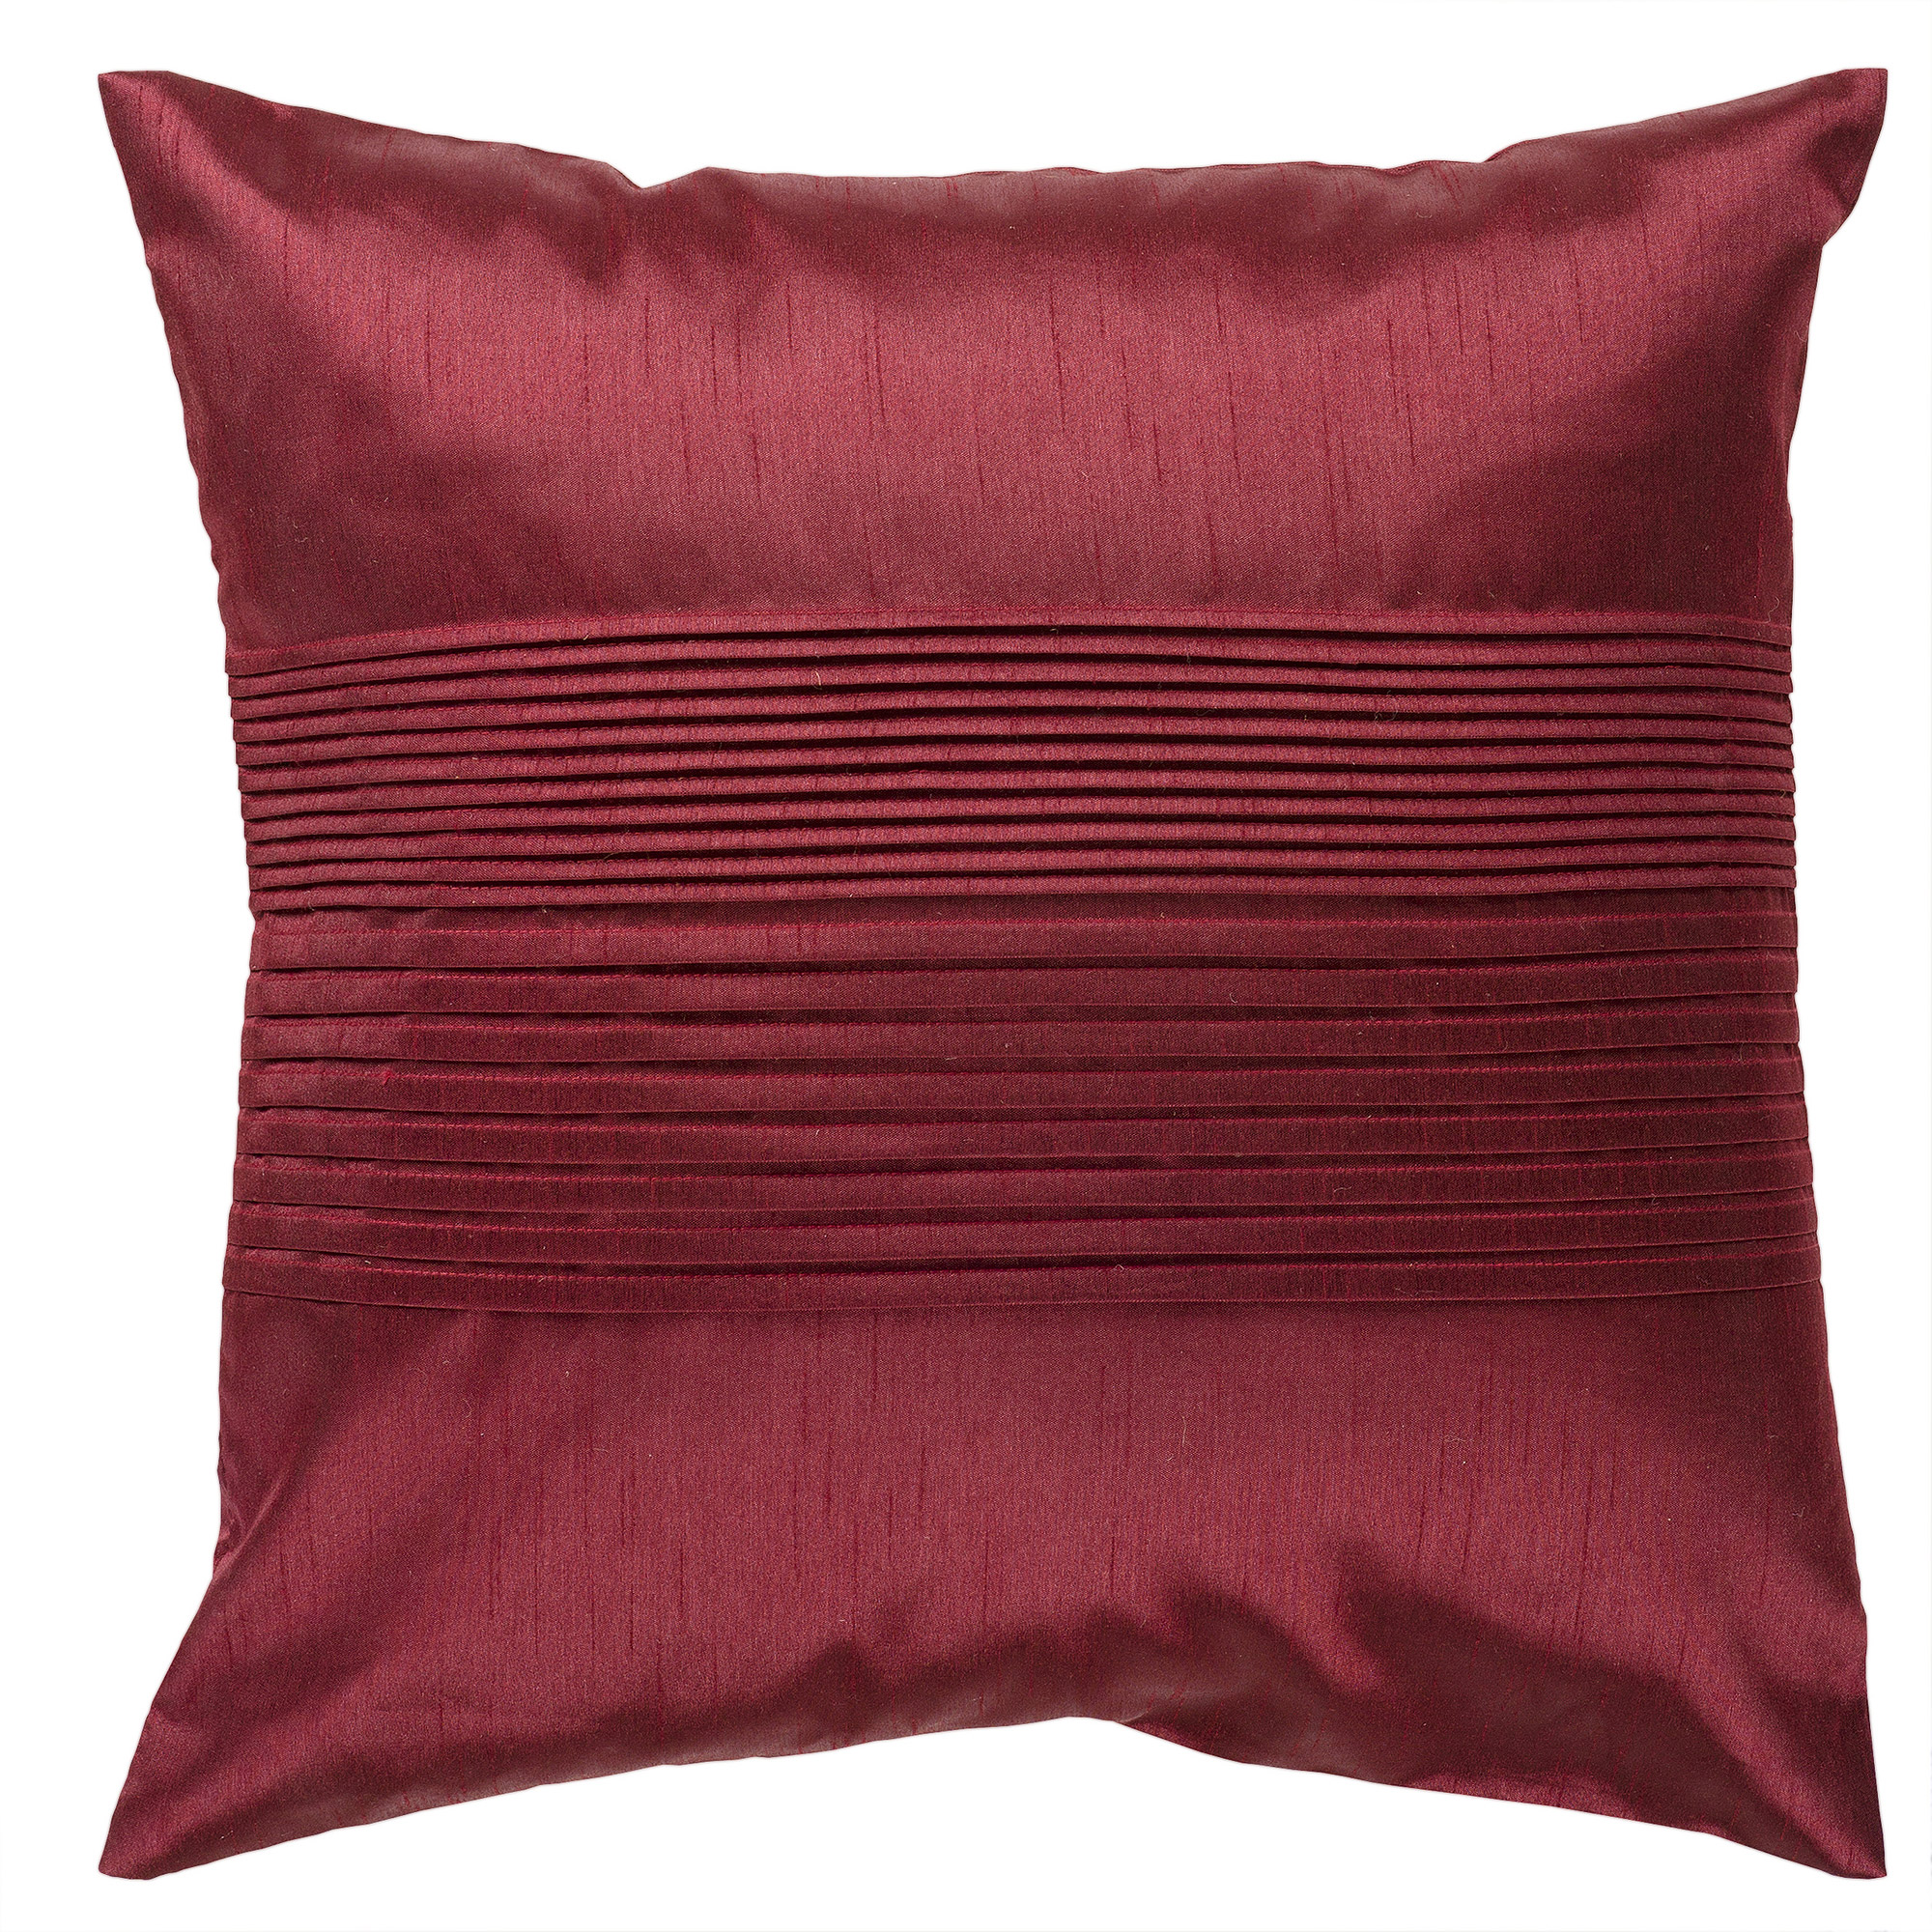 Art of Knot Pleated Hand Crafted Solid Decorative Pillow, Ruby